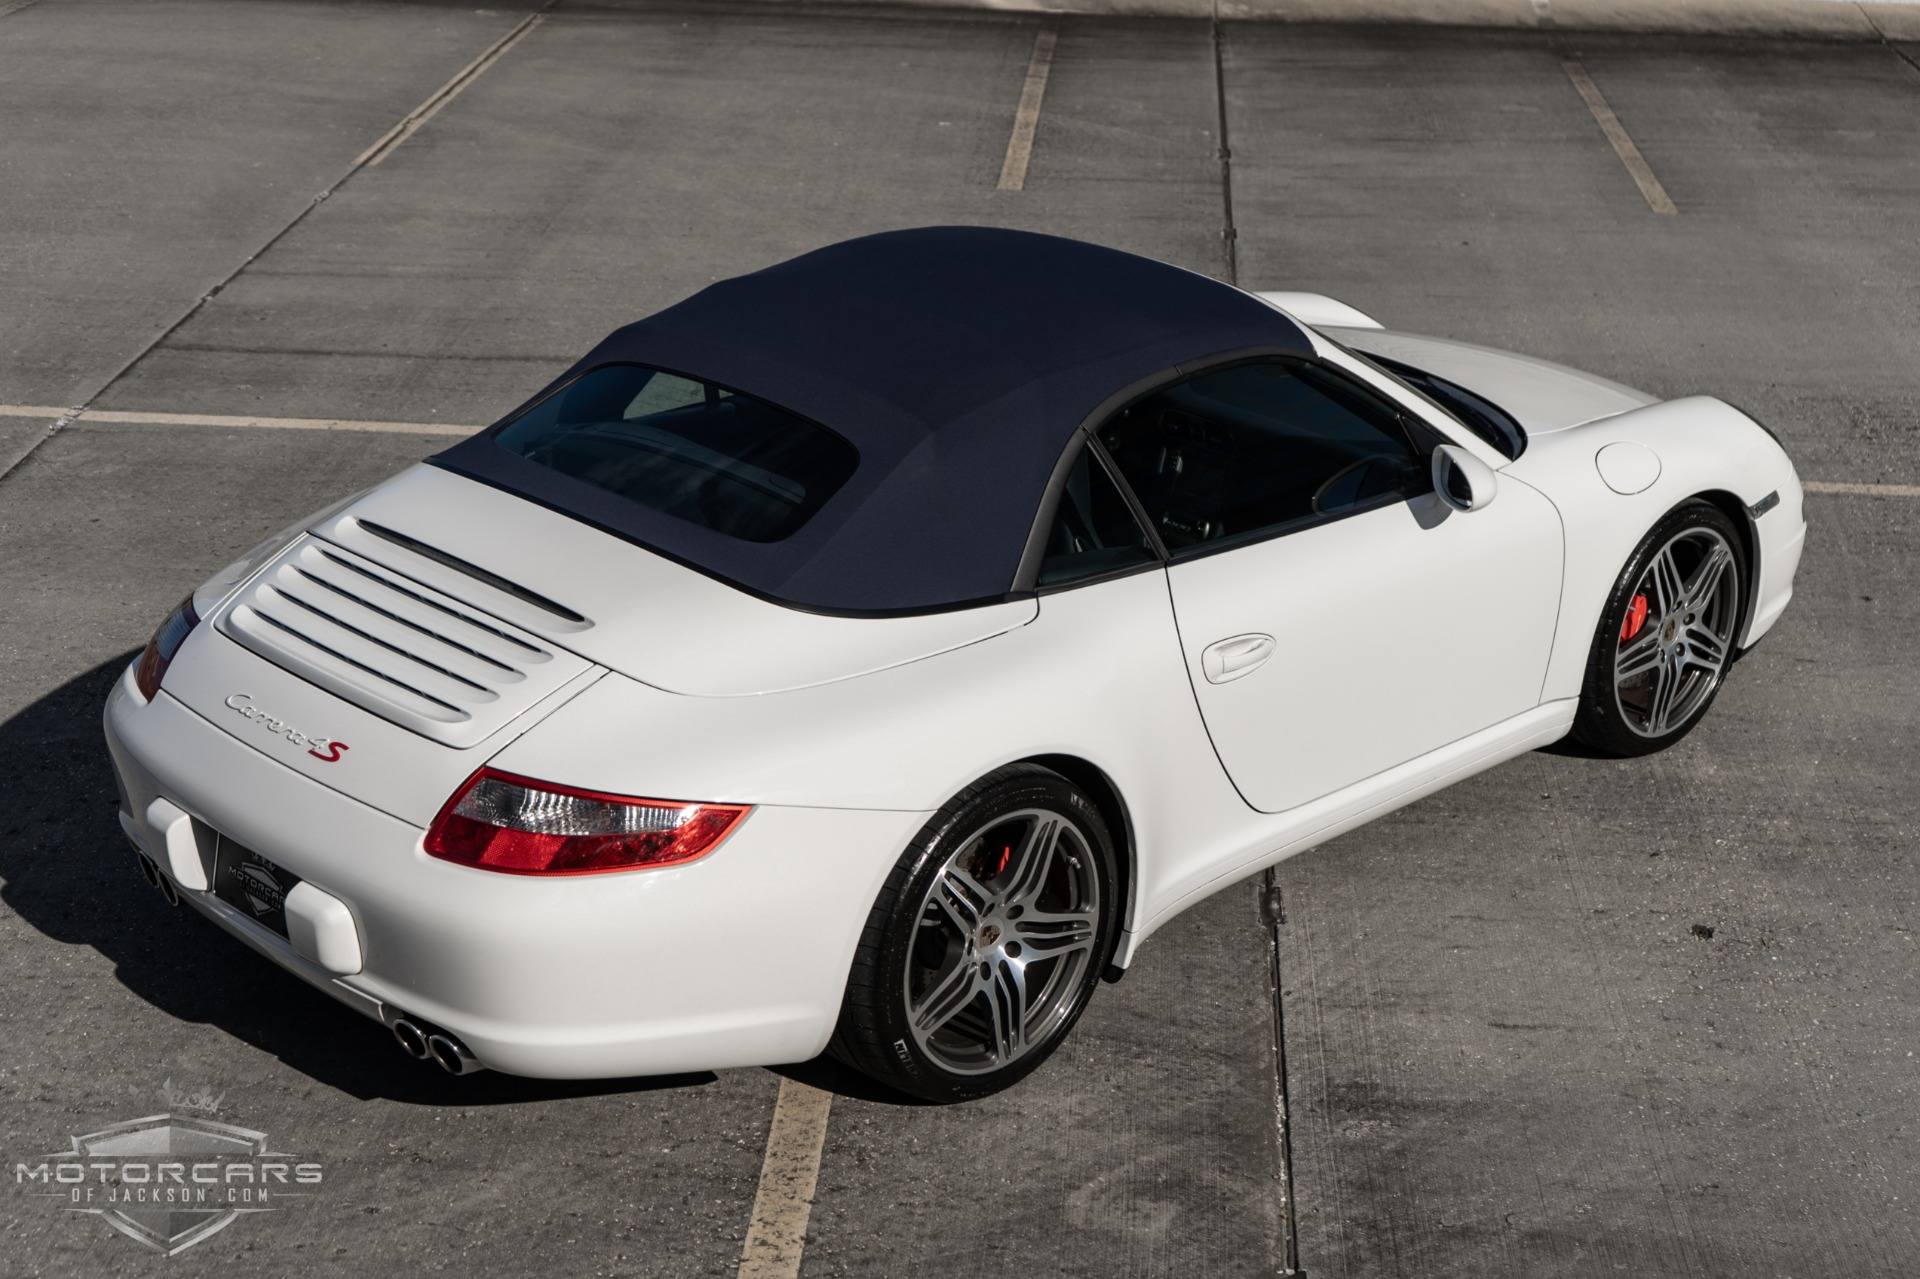 Used-2008-Porsche-911-Carrera-4S-Cabriolet-for-sale-Jackson-MS